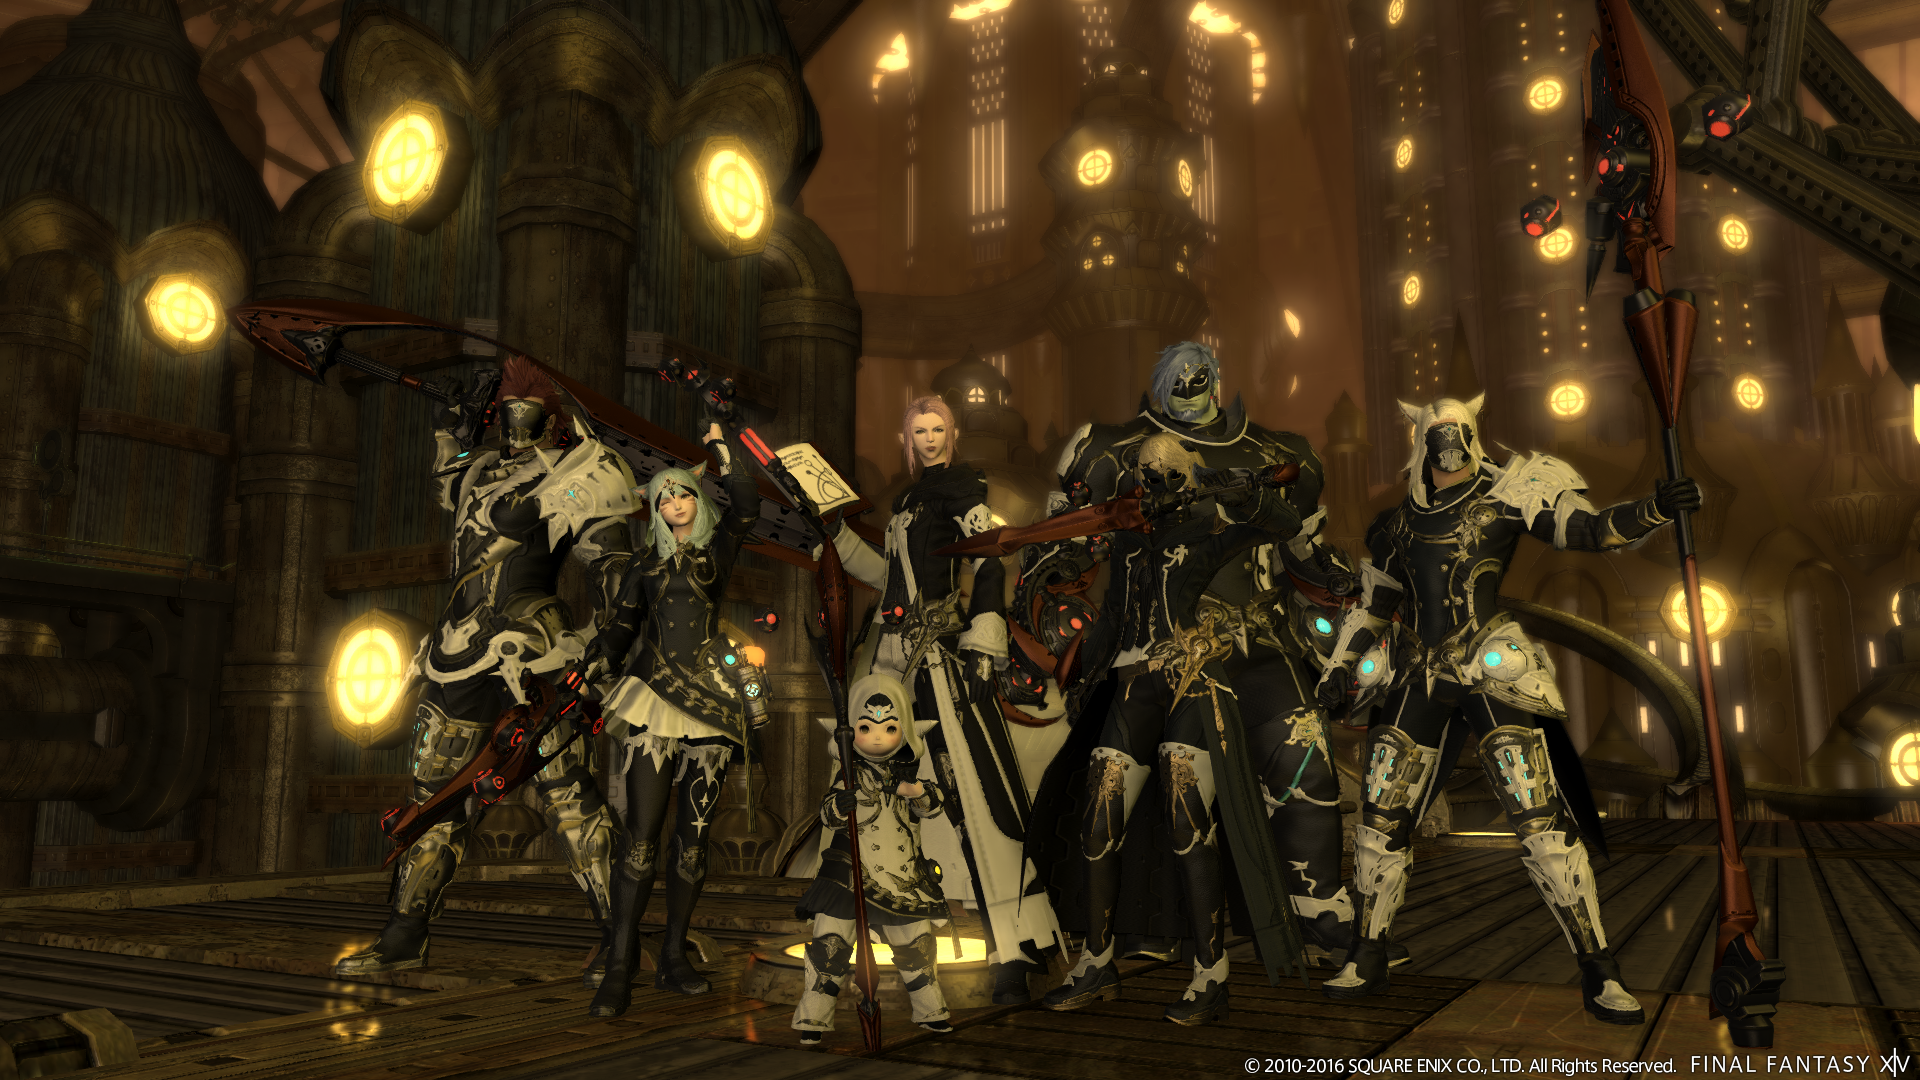 Final Fantasy XIV previews the end of Alexander and the